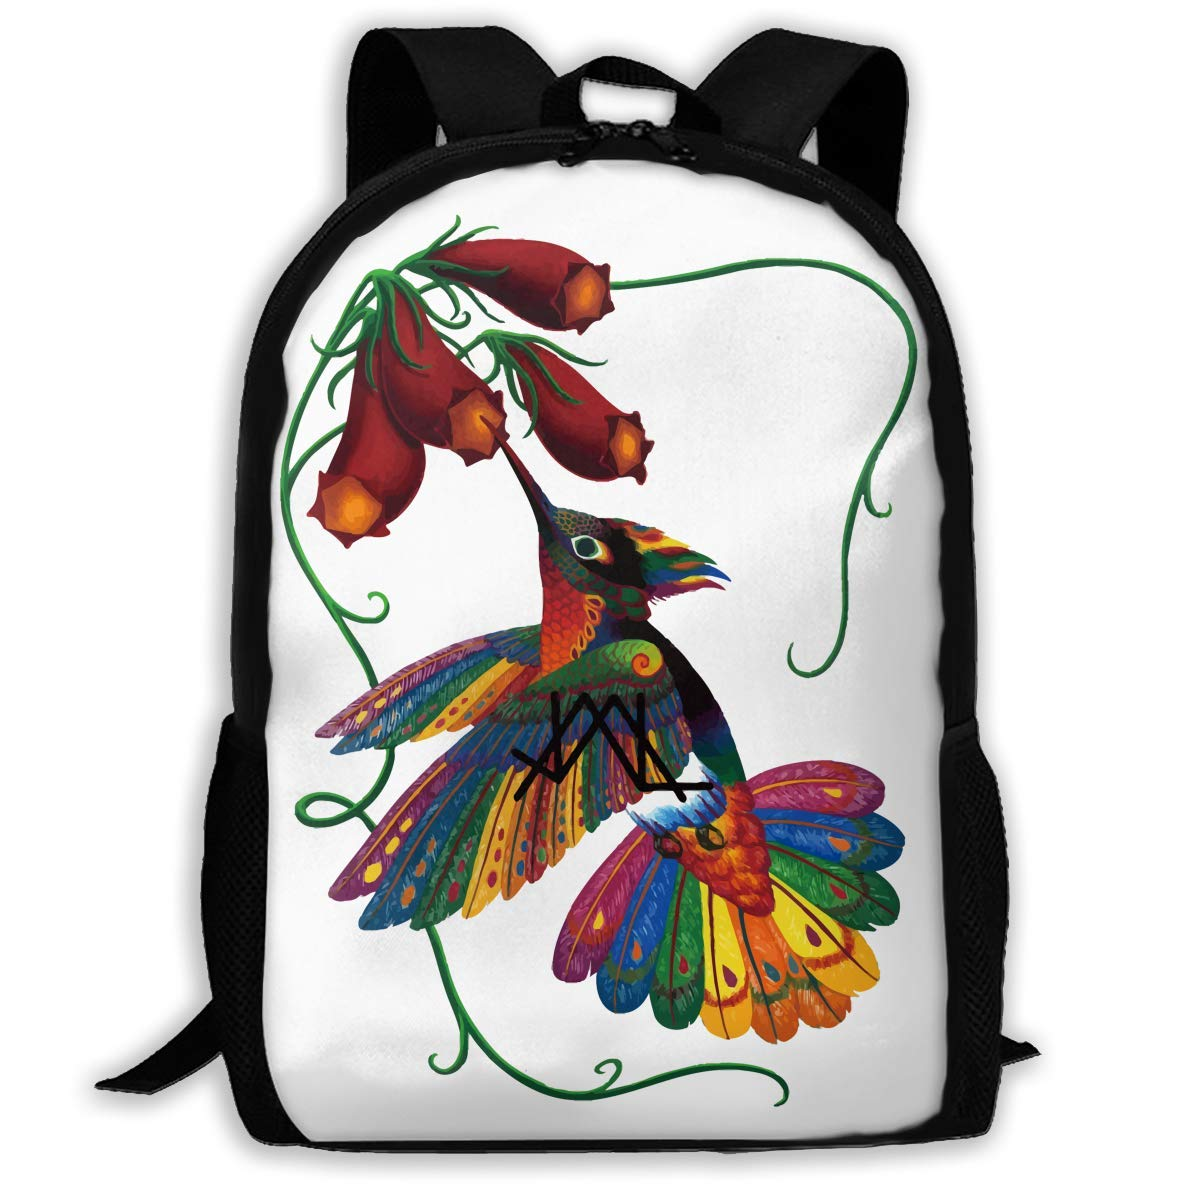 qihaoshangmao Backpacks Boy's Shoulder Bag Bookbags School Season Humming Bird Creative Painting Traveling Bags